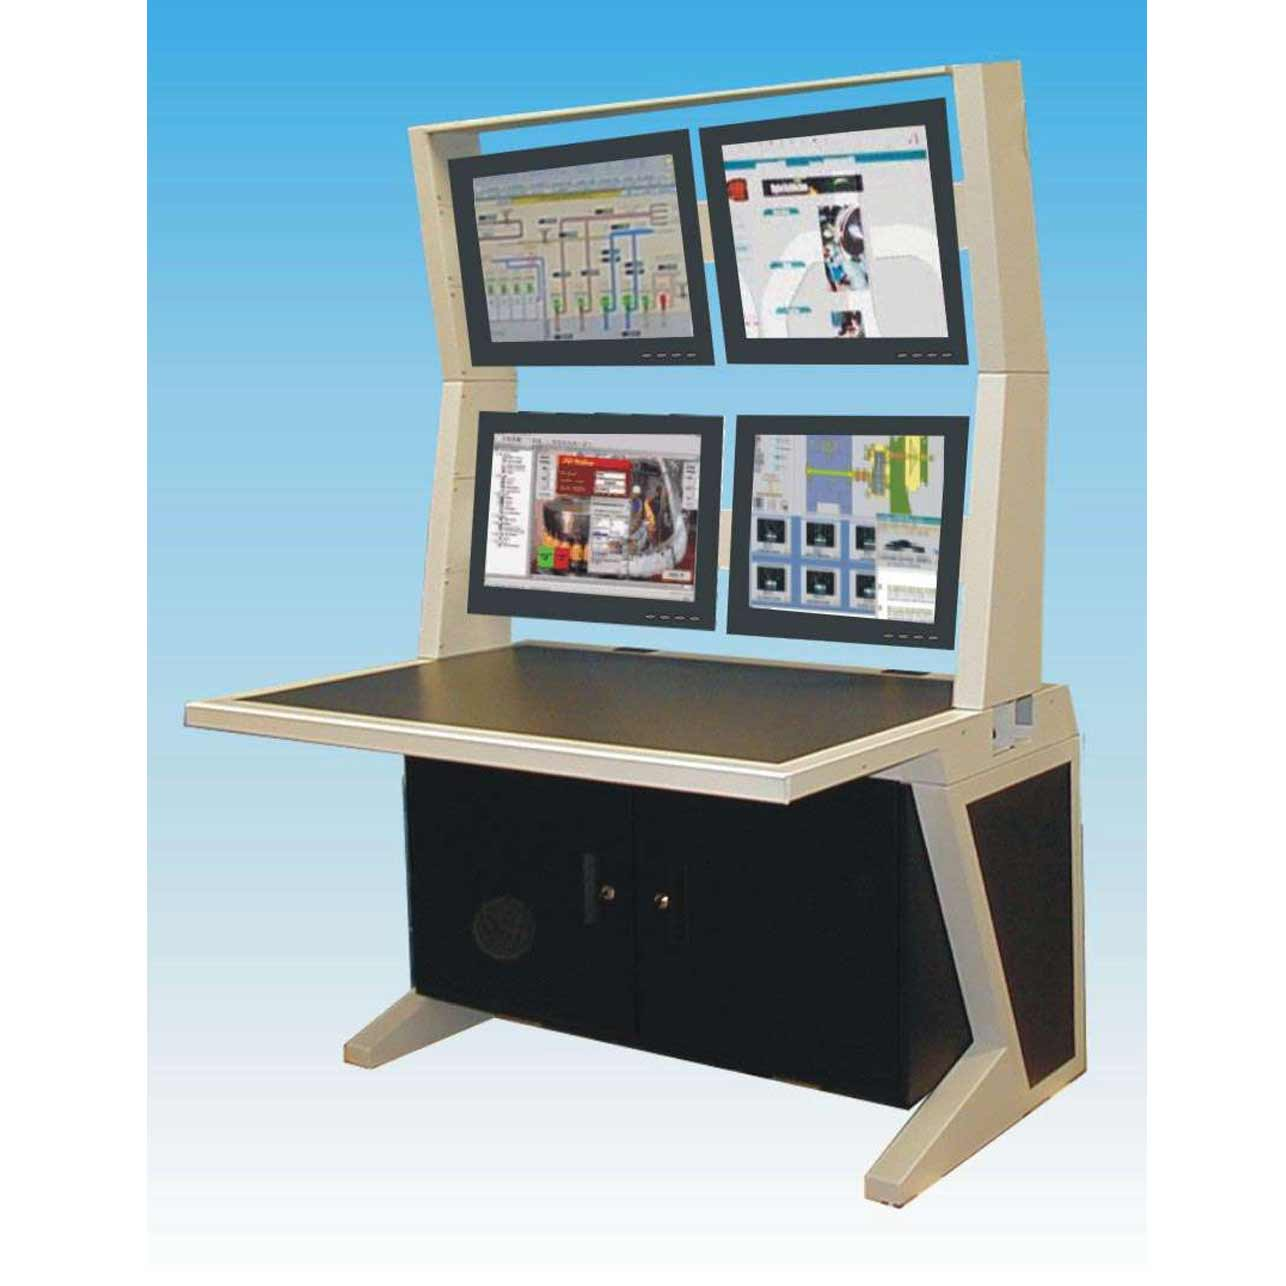 Modern Office Computer Desk with Four Monitor Panels